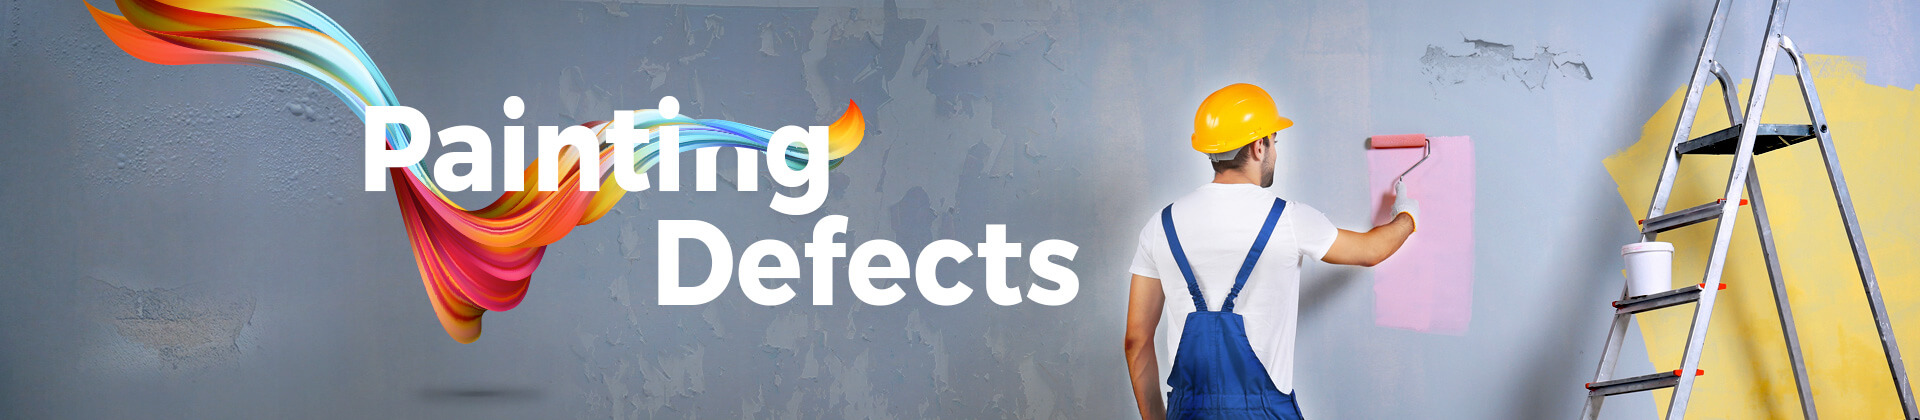 Painting Defects, Common Paint Defects and Solutions | British Paints